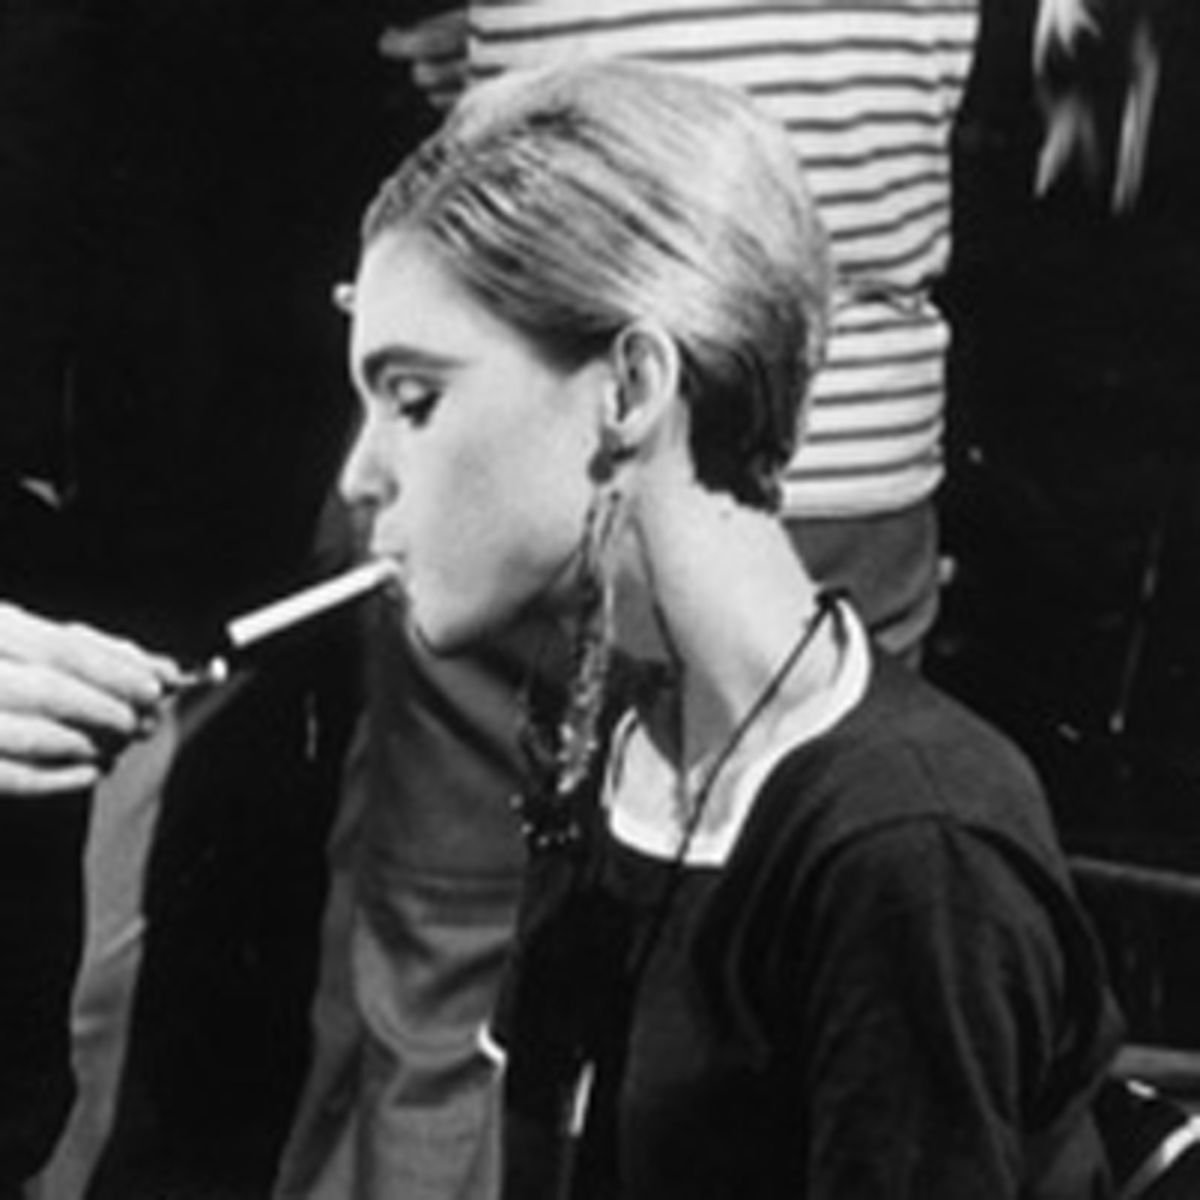 sedgwick girls Edith minturn sedgwick lived from april 20, 1943 till november 16, 1971, she was an american actress, socialite, model and heiress she is best known for being one of andy warhol's superstars.